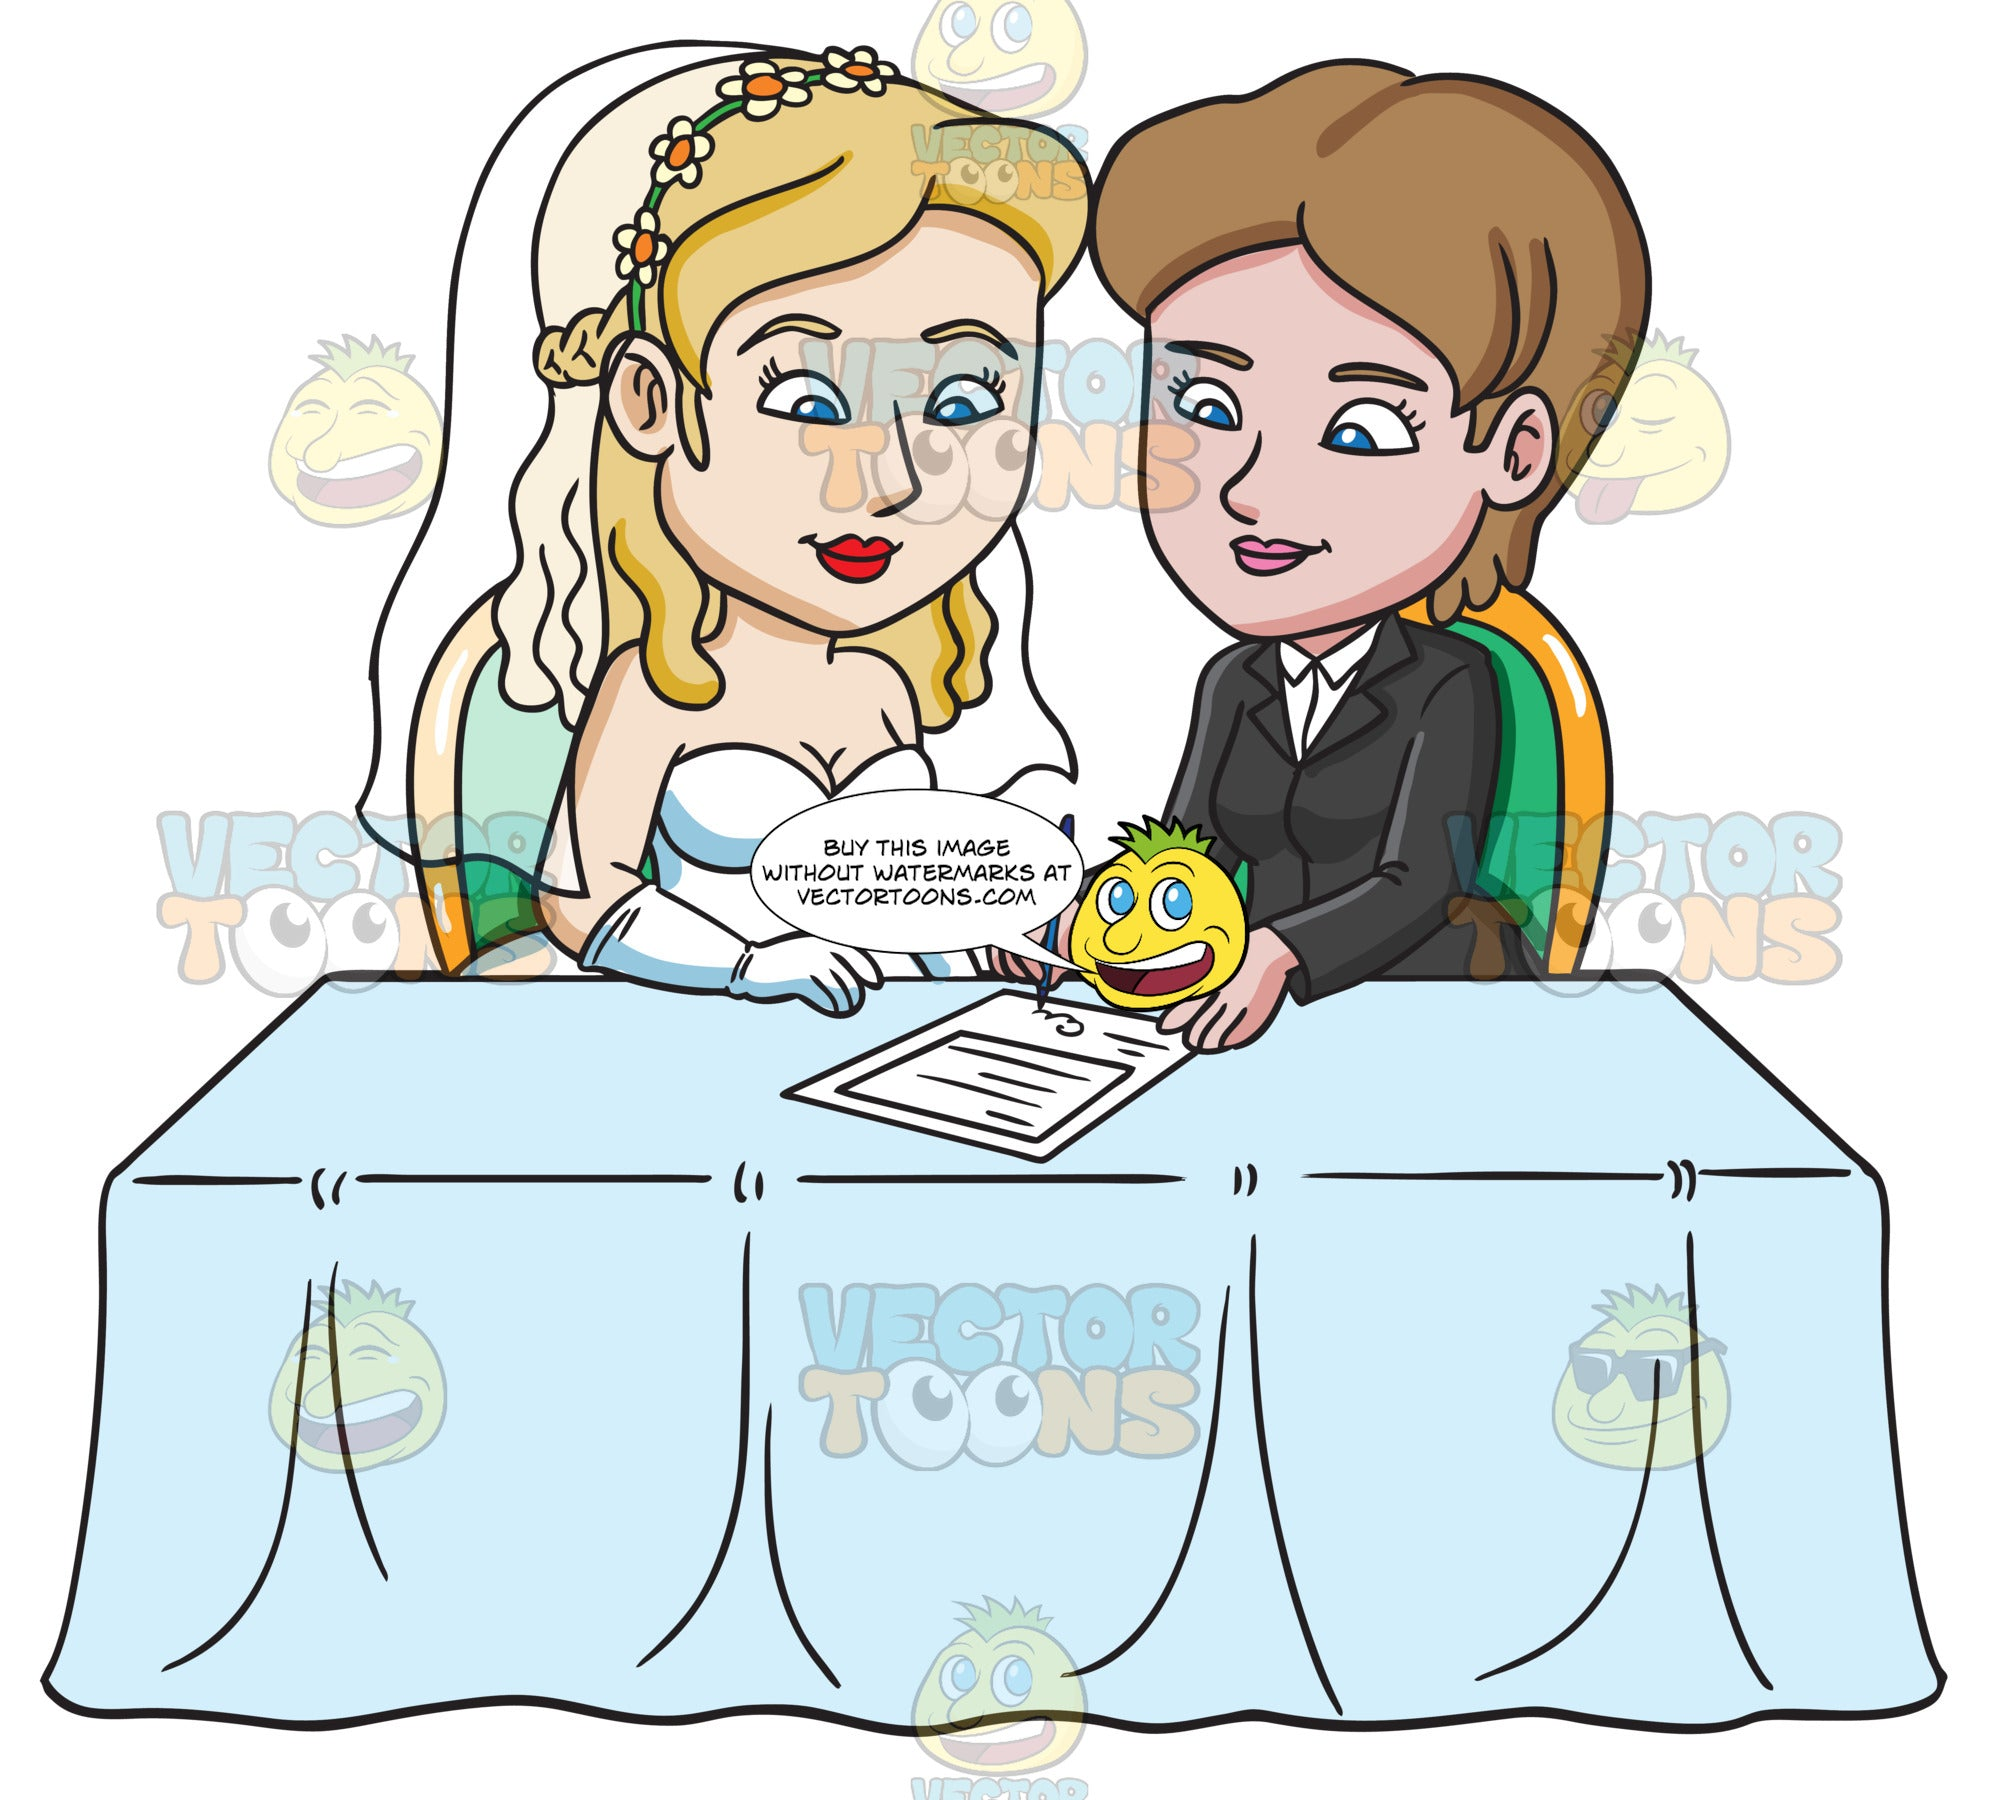 A Lesbian Couple Signing Their Marriage Certificate